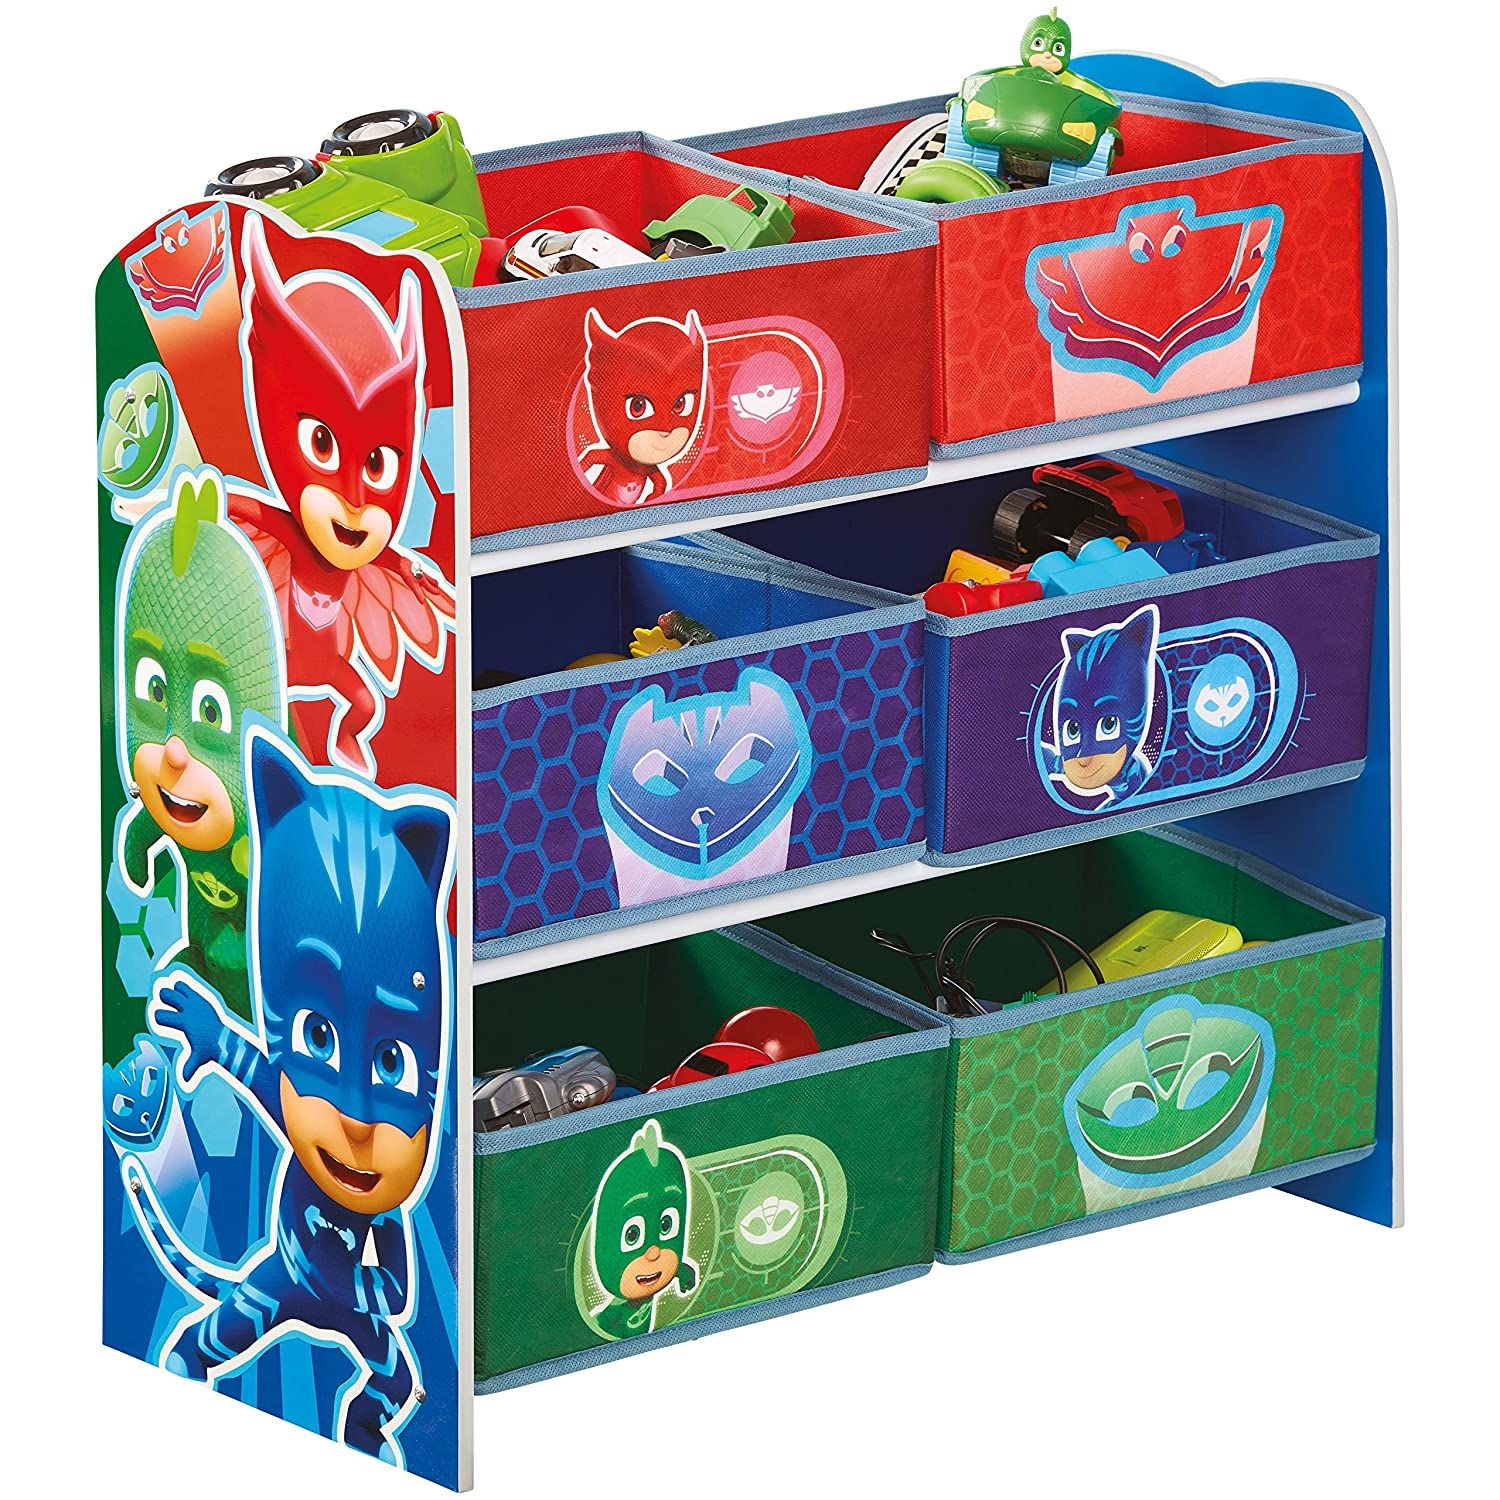 Hello Home Pj Masks Kids Bedroom Toy Storage Unit with 6 Bins, Wood, Multicoloured Worlds Apart 471PJM